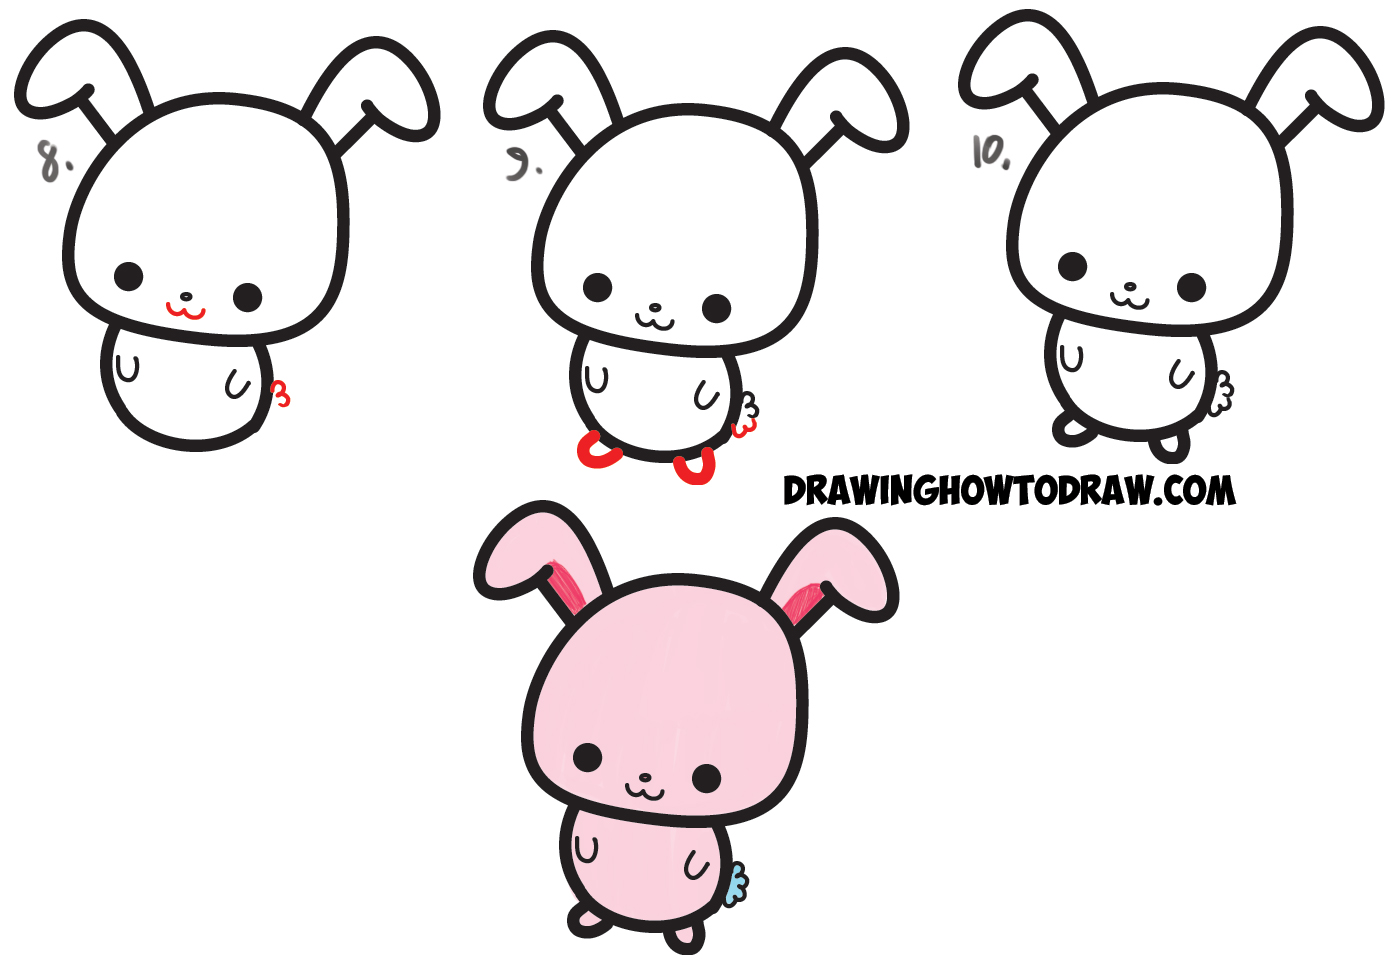 Cute easy draw cartoon characters for How to doodle characters